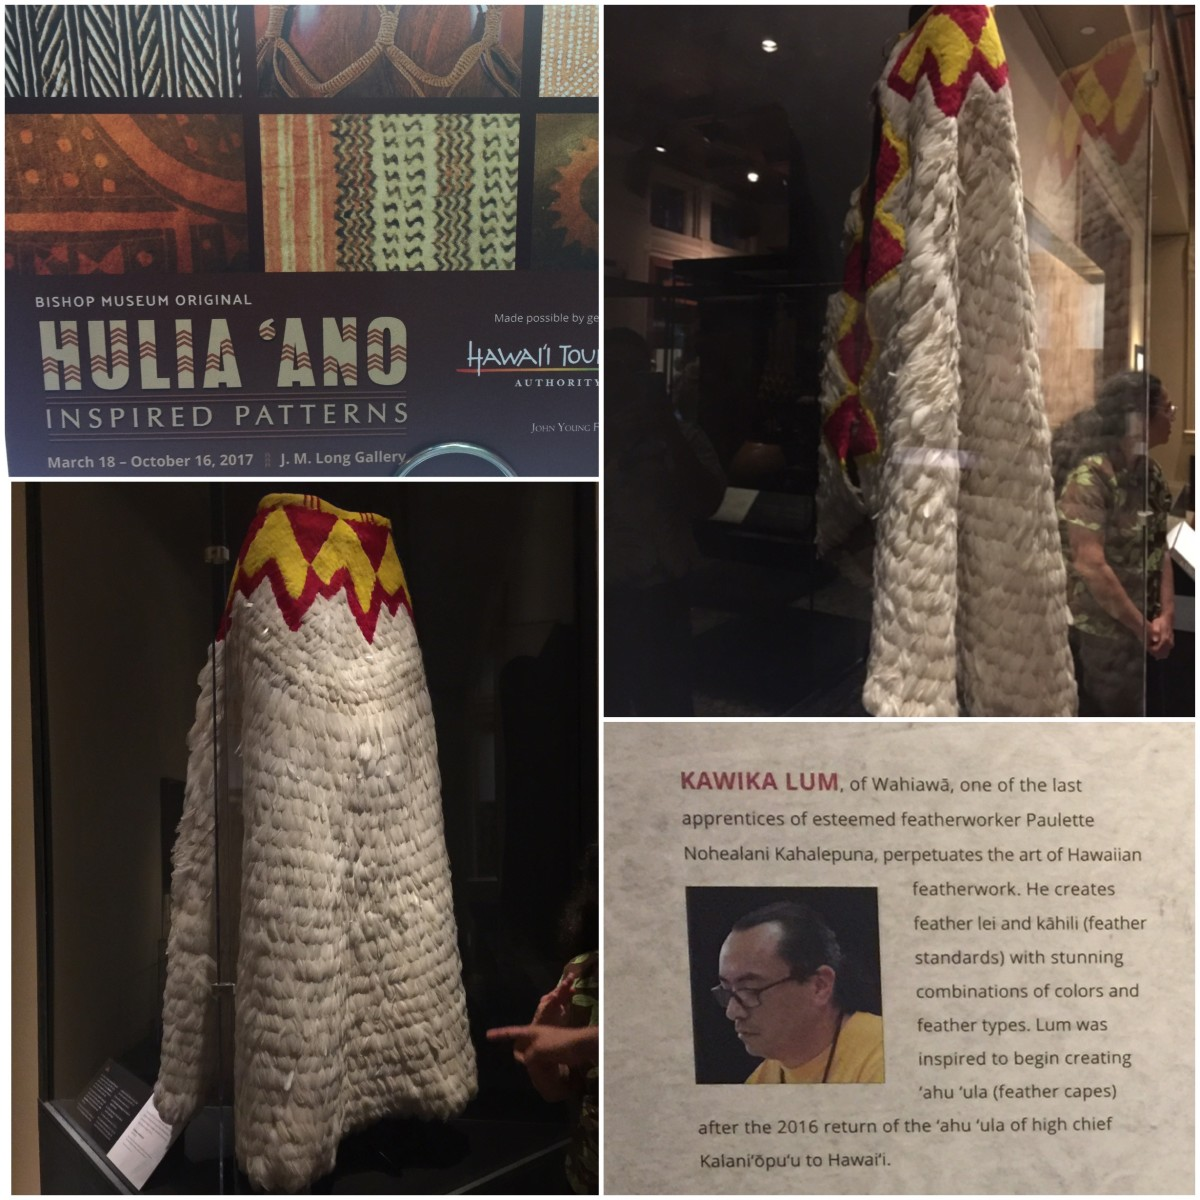 Cape (ʻahuʻula), 2017 by Kawika Lum-Nelmida. White rooster tail and red-and-yellow-dyed goose feathers, dimensions 6 × 7.5 feet. Hulia ʻAno Exhibit, Bishop Museum, Honolulu. (Courtesy of the artist)